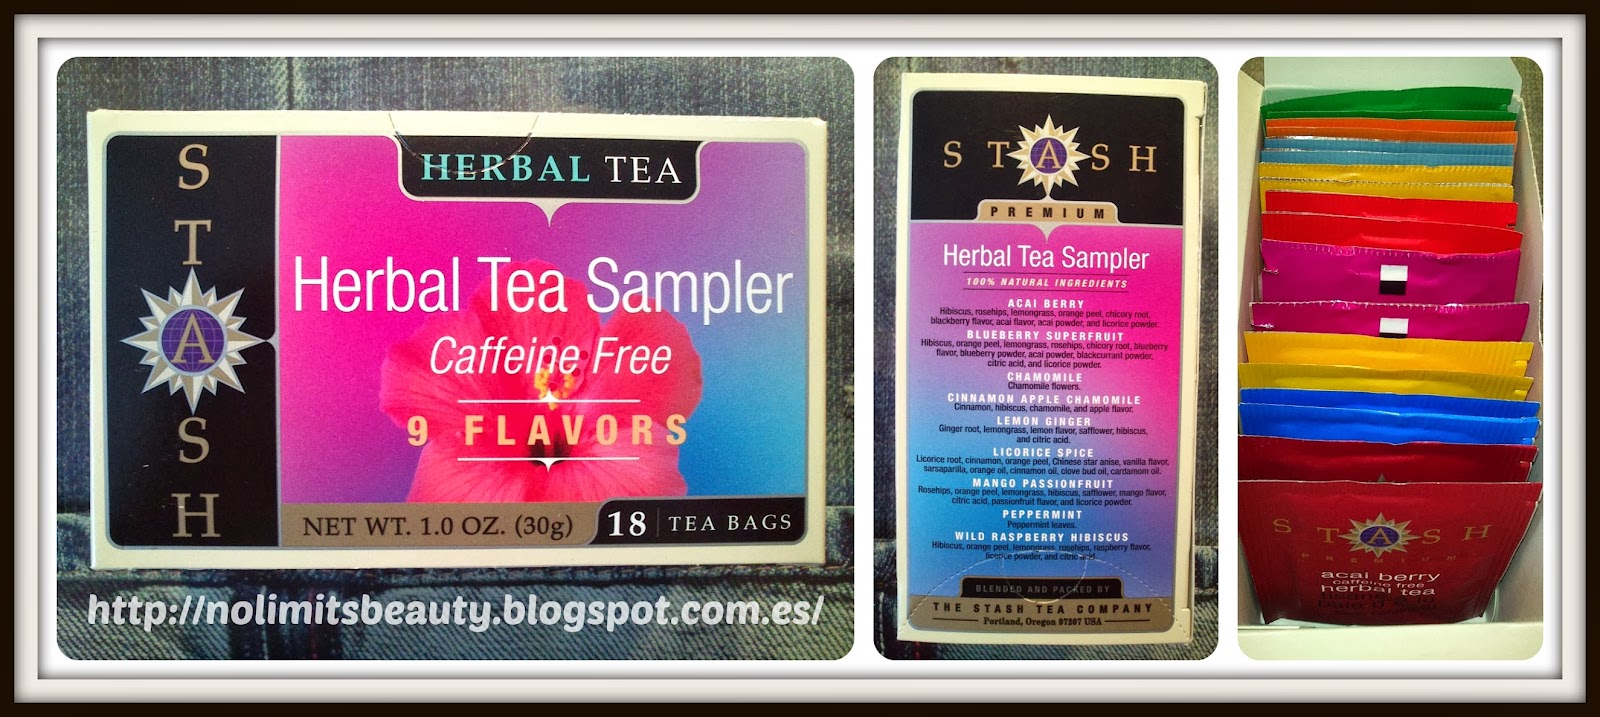 iHerb - Stash Tea, Herbal Tea Sampler, Caffeine Free, 9 Flavors, 18 Tea Bags, 1.0 oz (30 g)